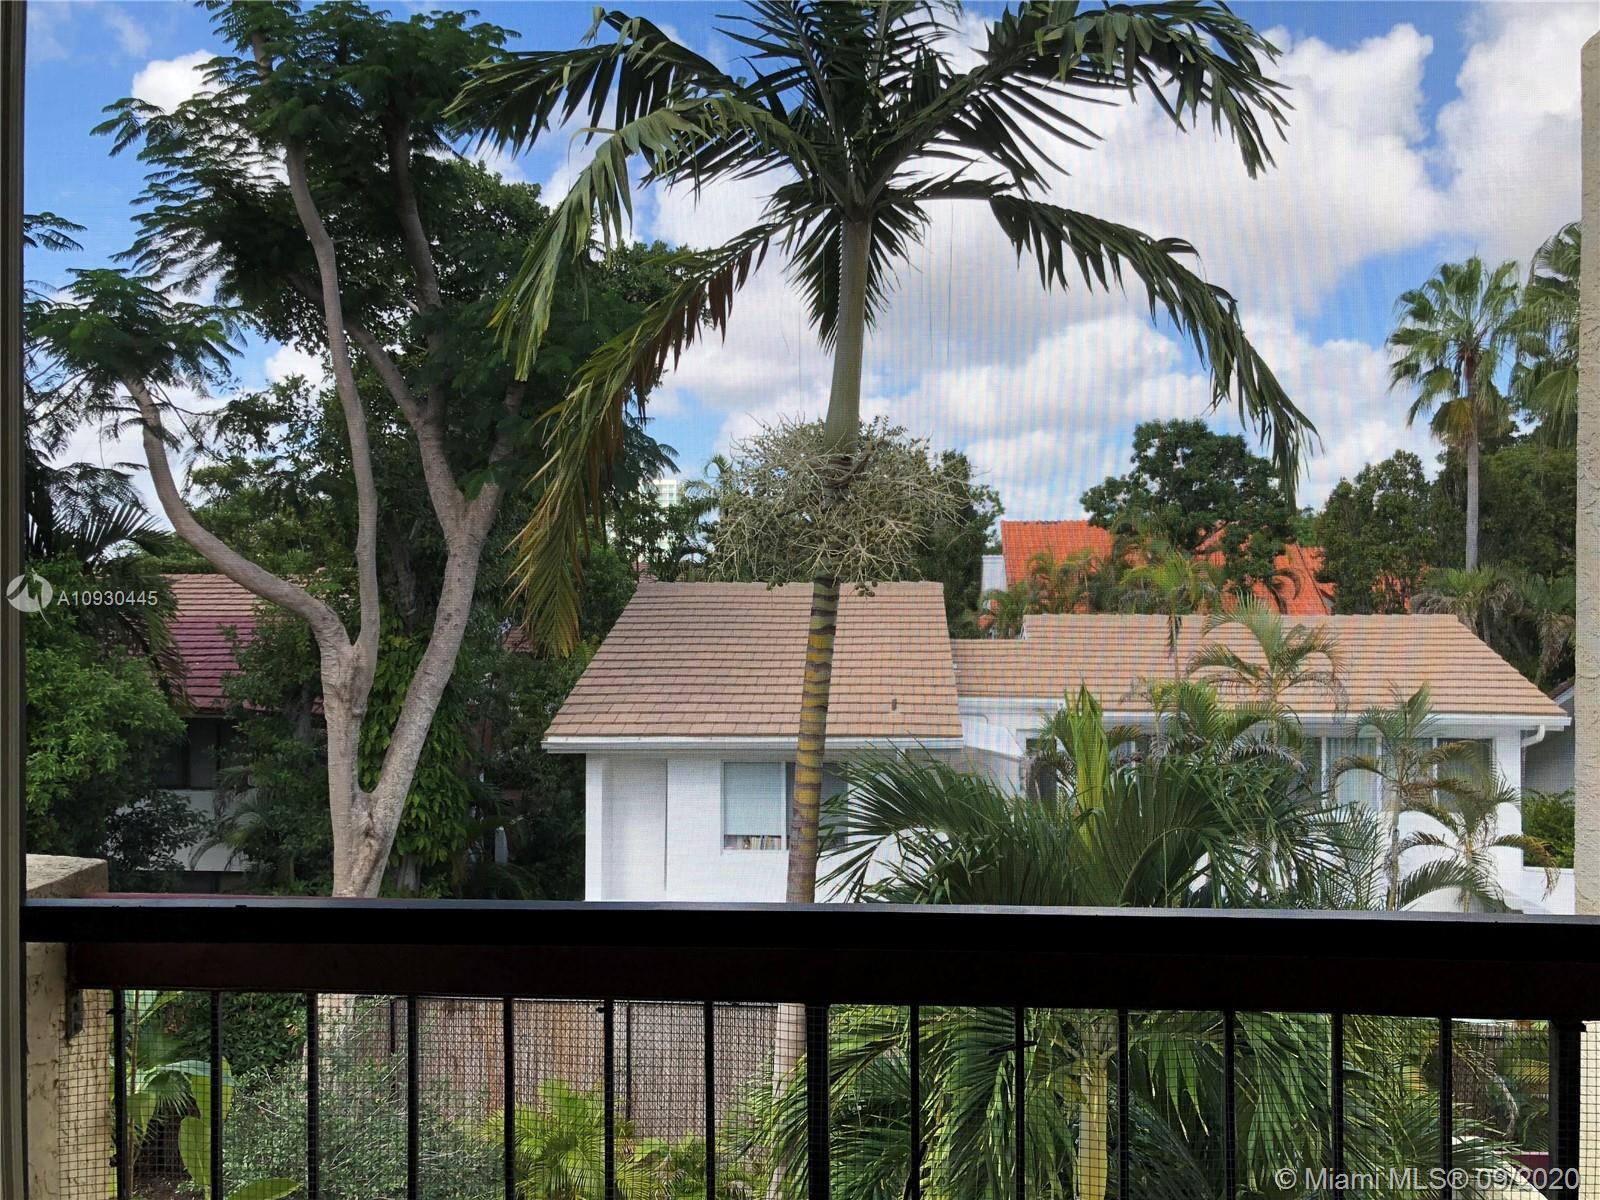 Fantastic Central Miami Brickell location! Beautiful remodeled 2 story LOFT style unit, 1 bedroom/1